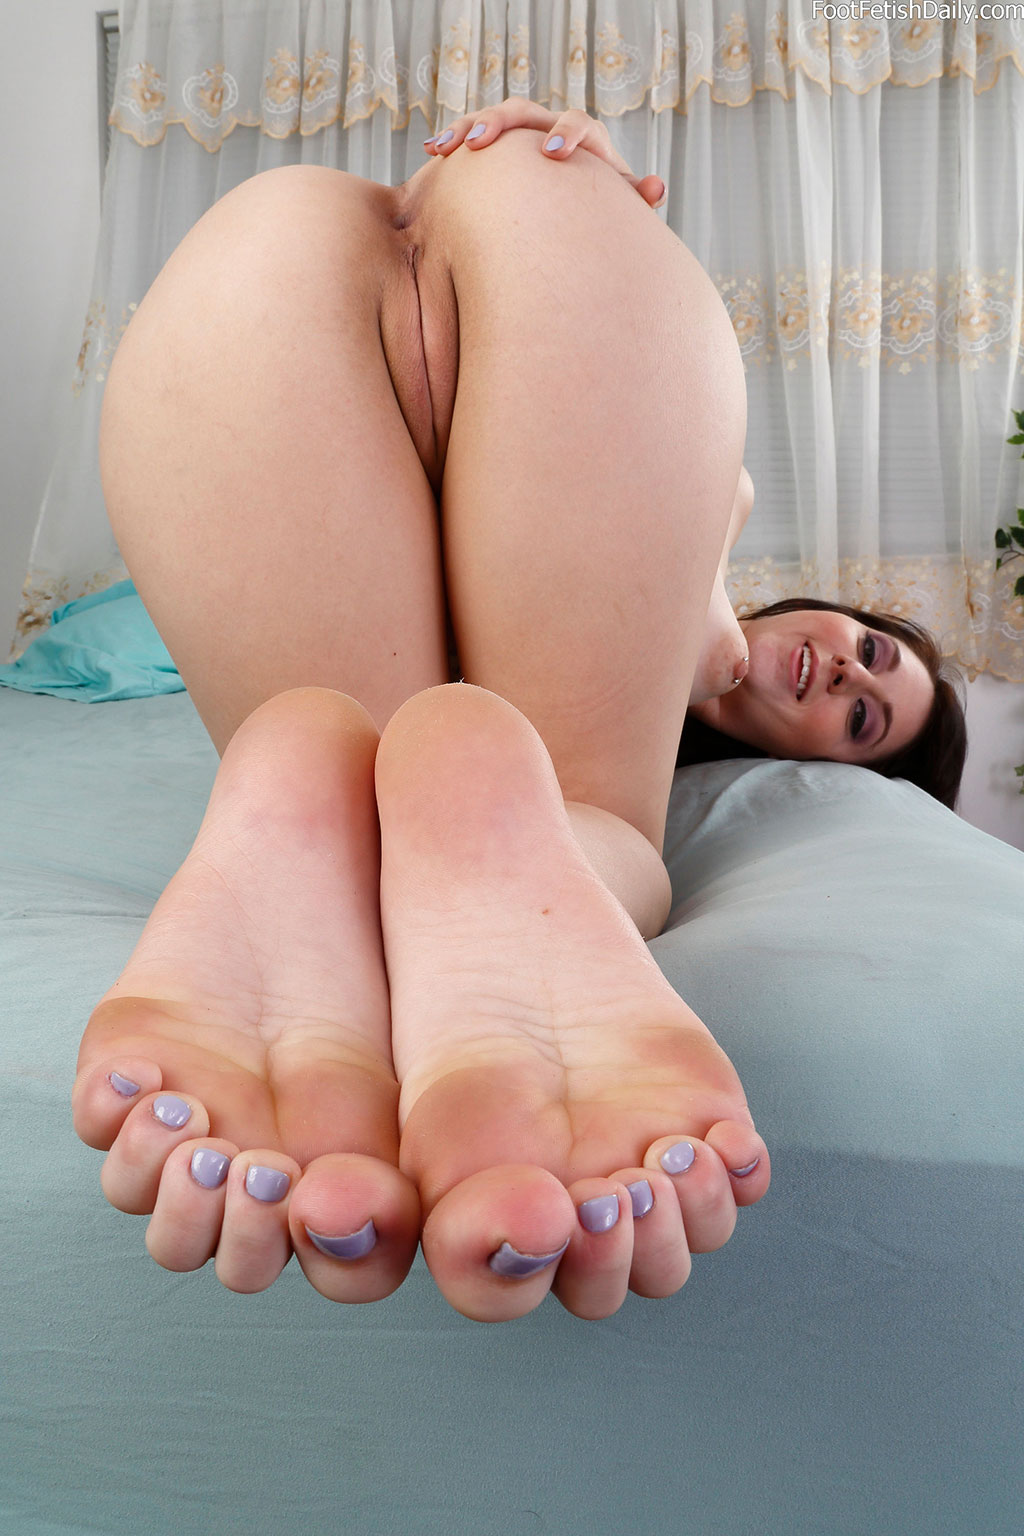 Teen Feet And Pussy